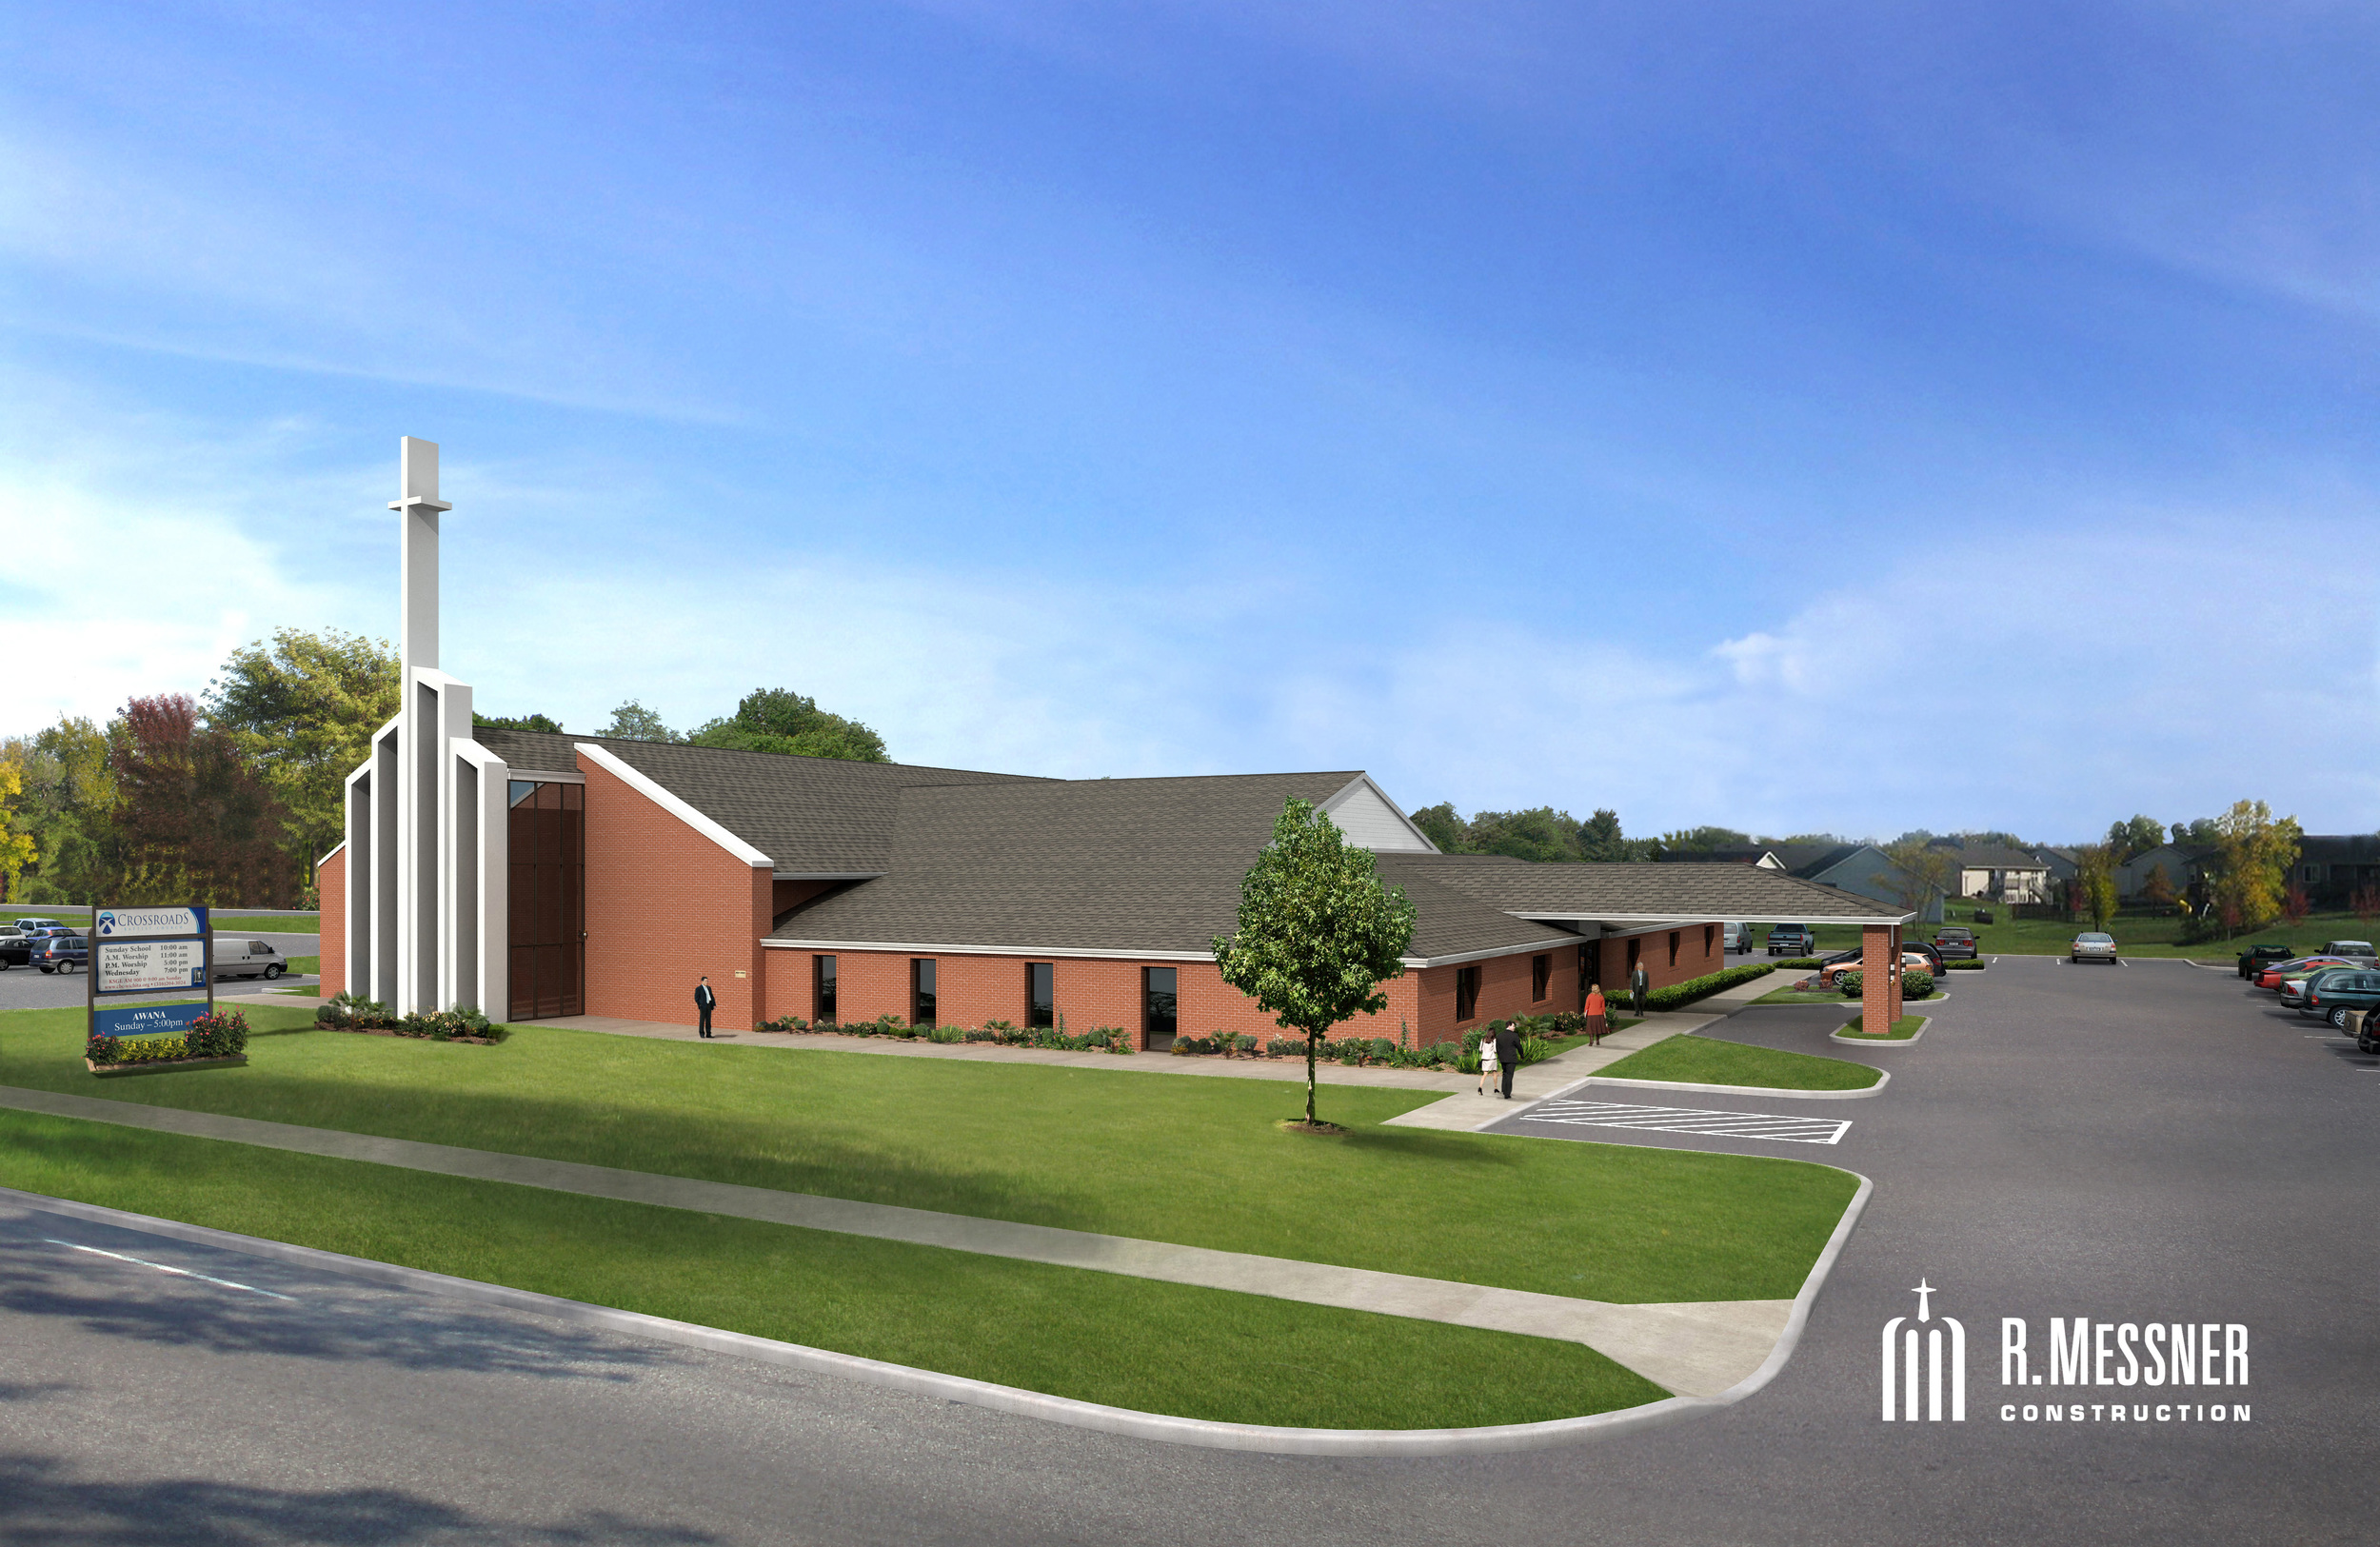 Proposed phase one expansion to include a new nursery complex, new restrooms, new classrooms, and a covered drop-off area. The plans have already been paid for and we are growing our building fund to accomplish the dream the Lord has given us.